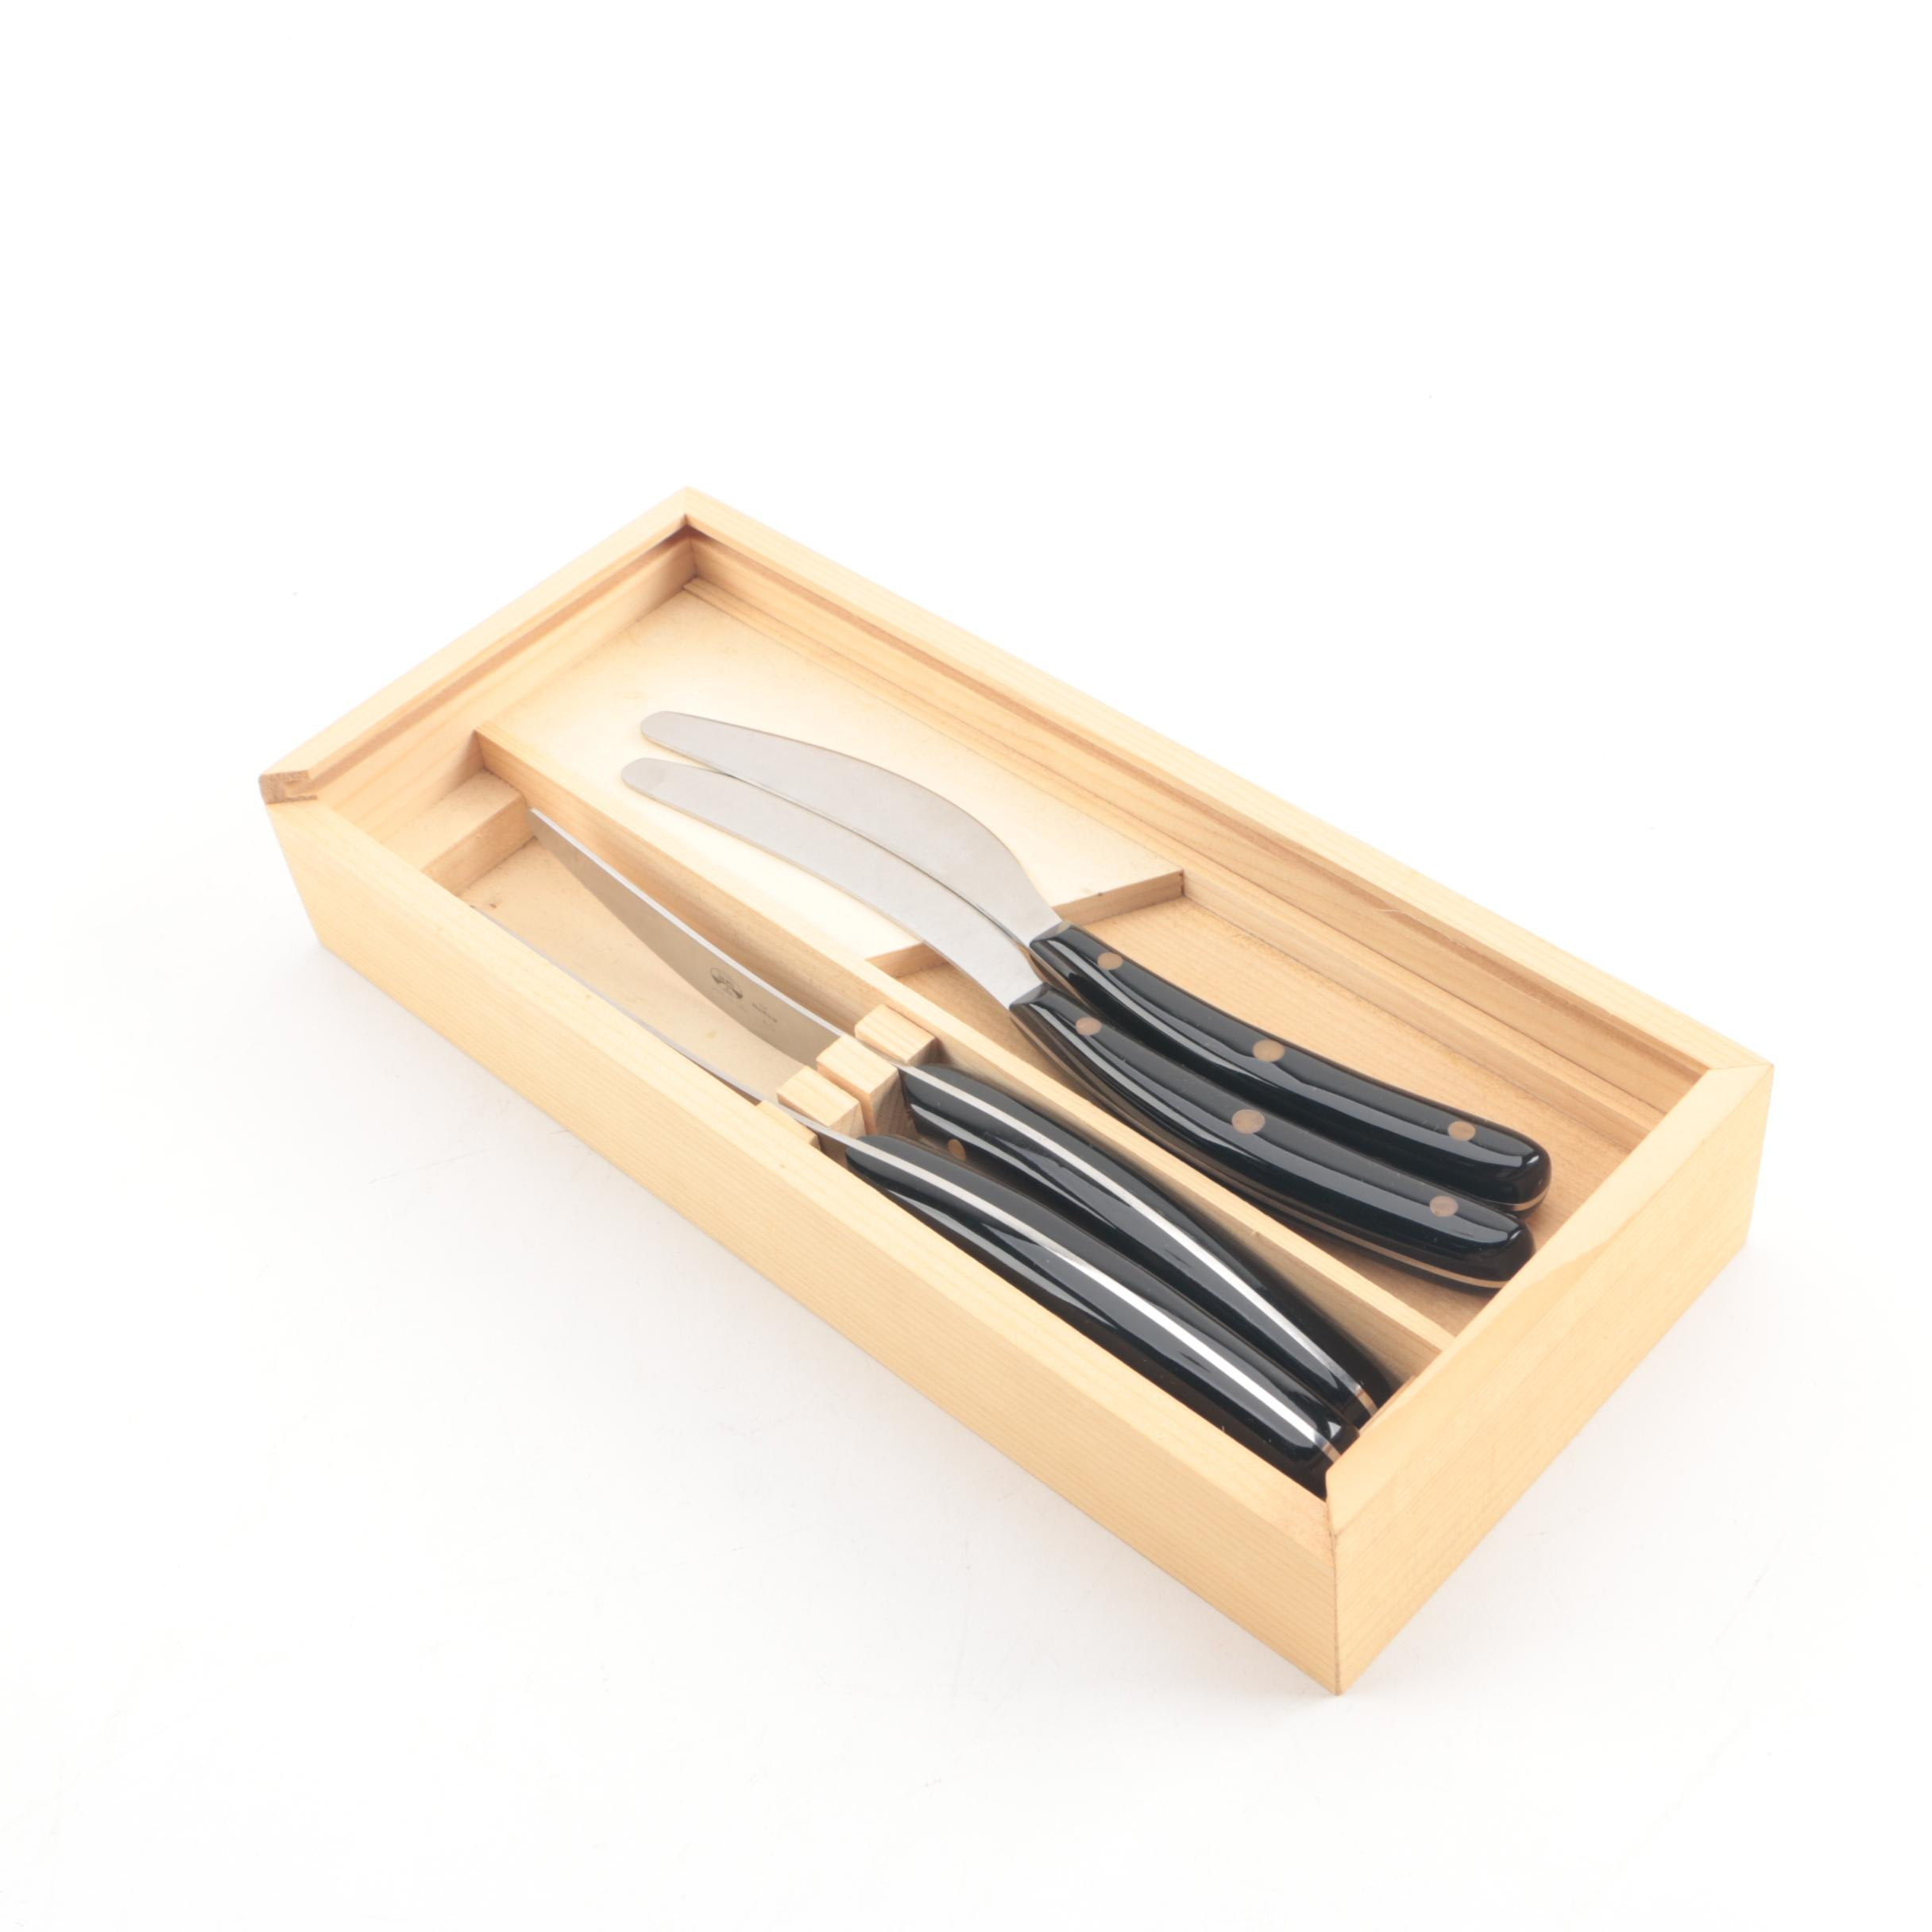 Coltellerie Berti Italian Knives in Box with Lucite Handles